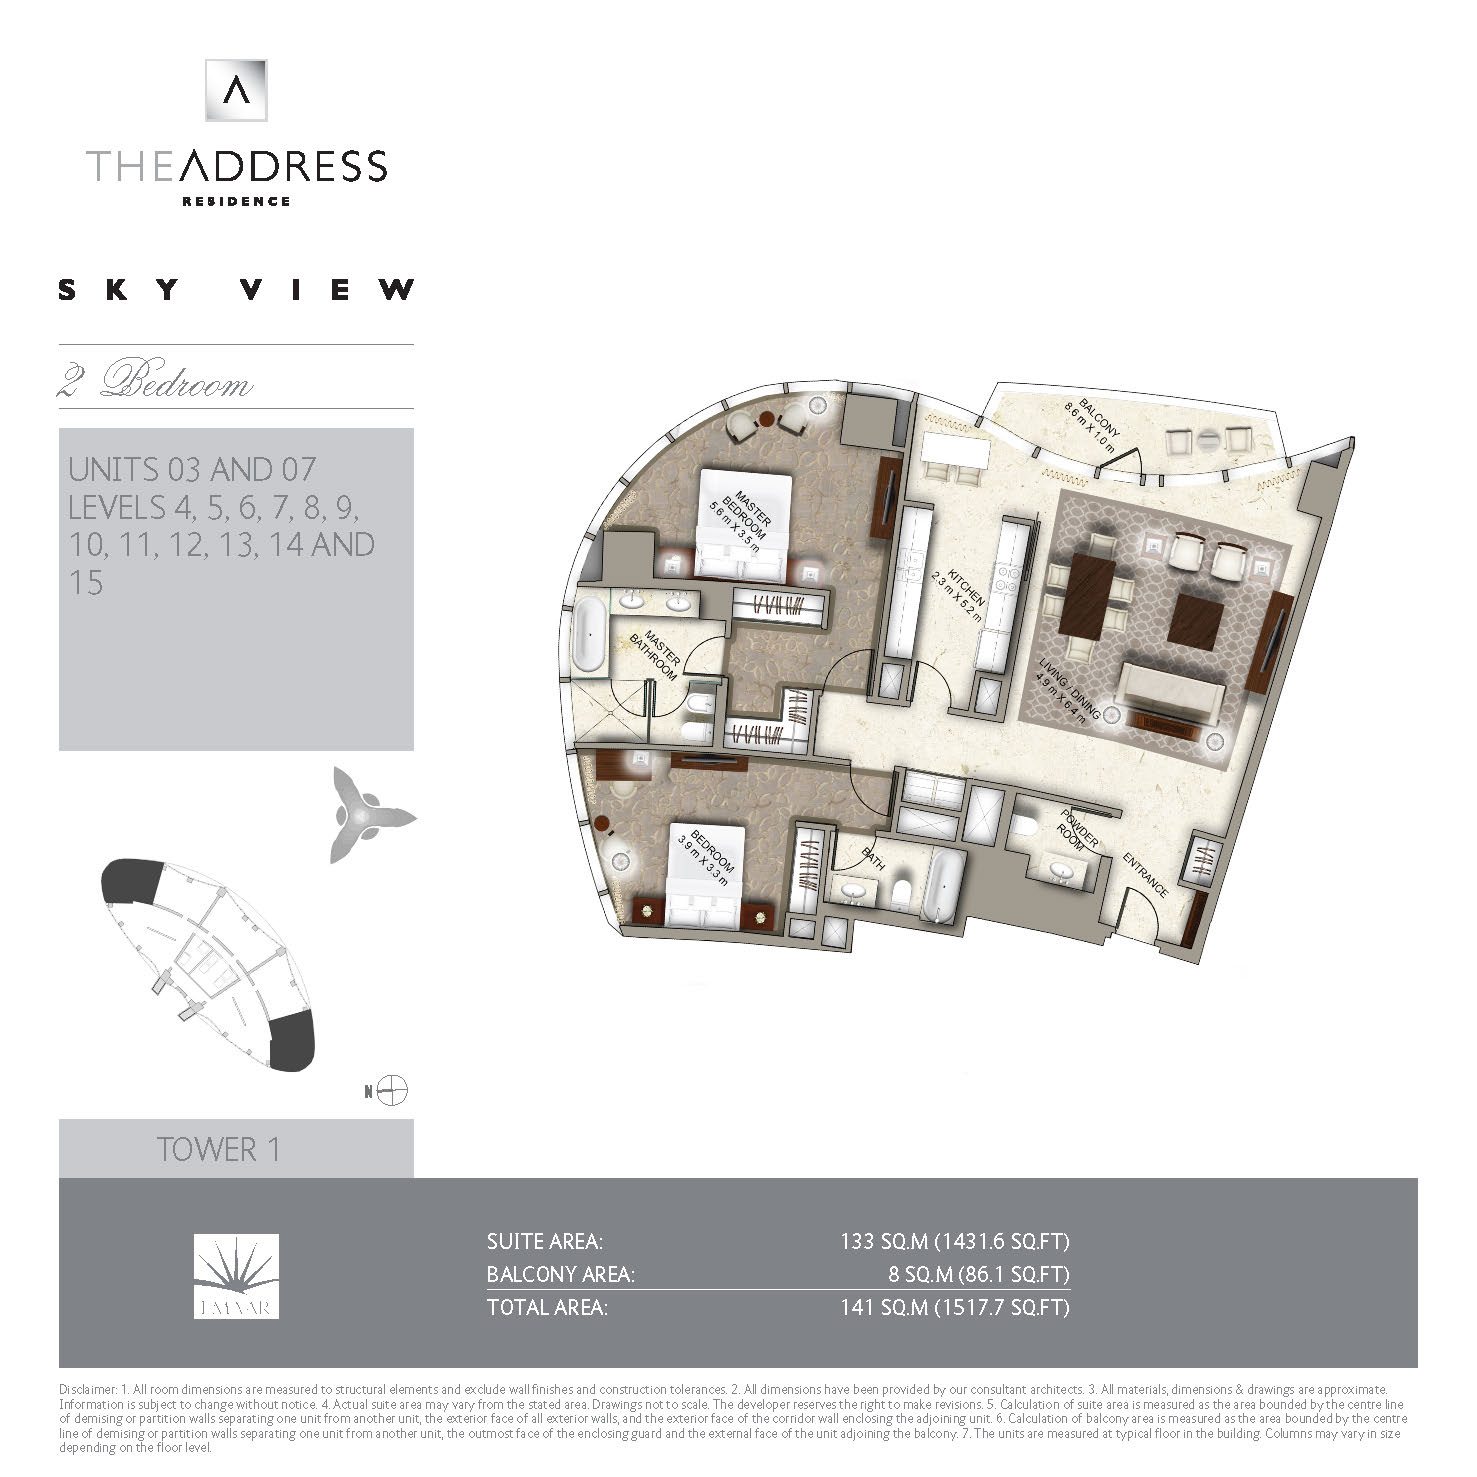 Floor plans the address sky view towers downtown dubai for Floor plans by address